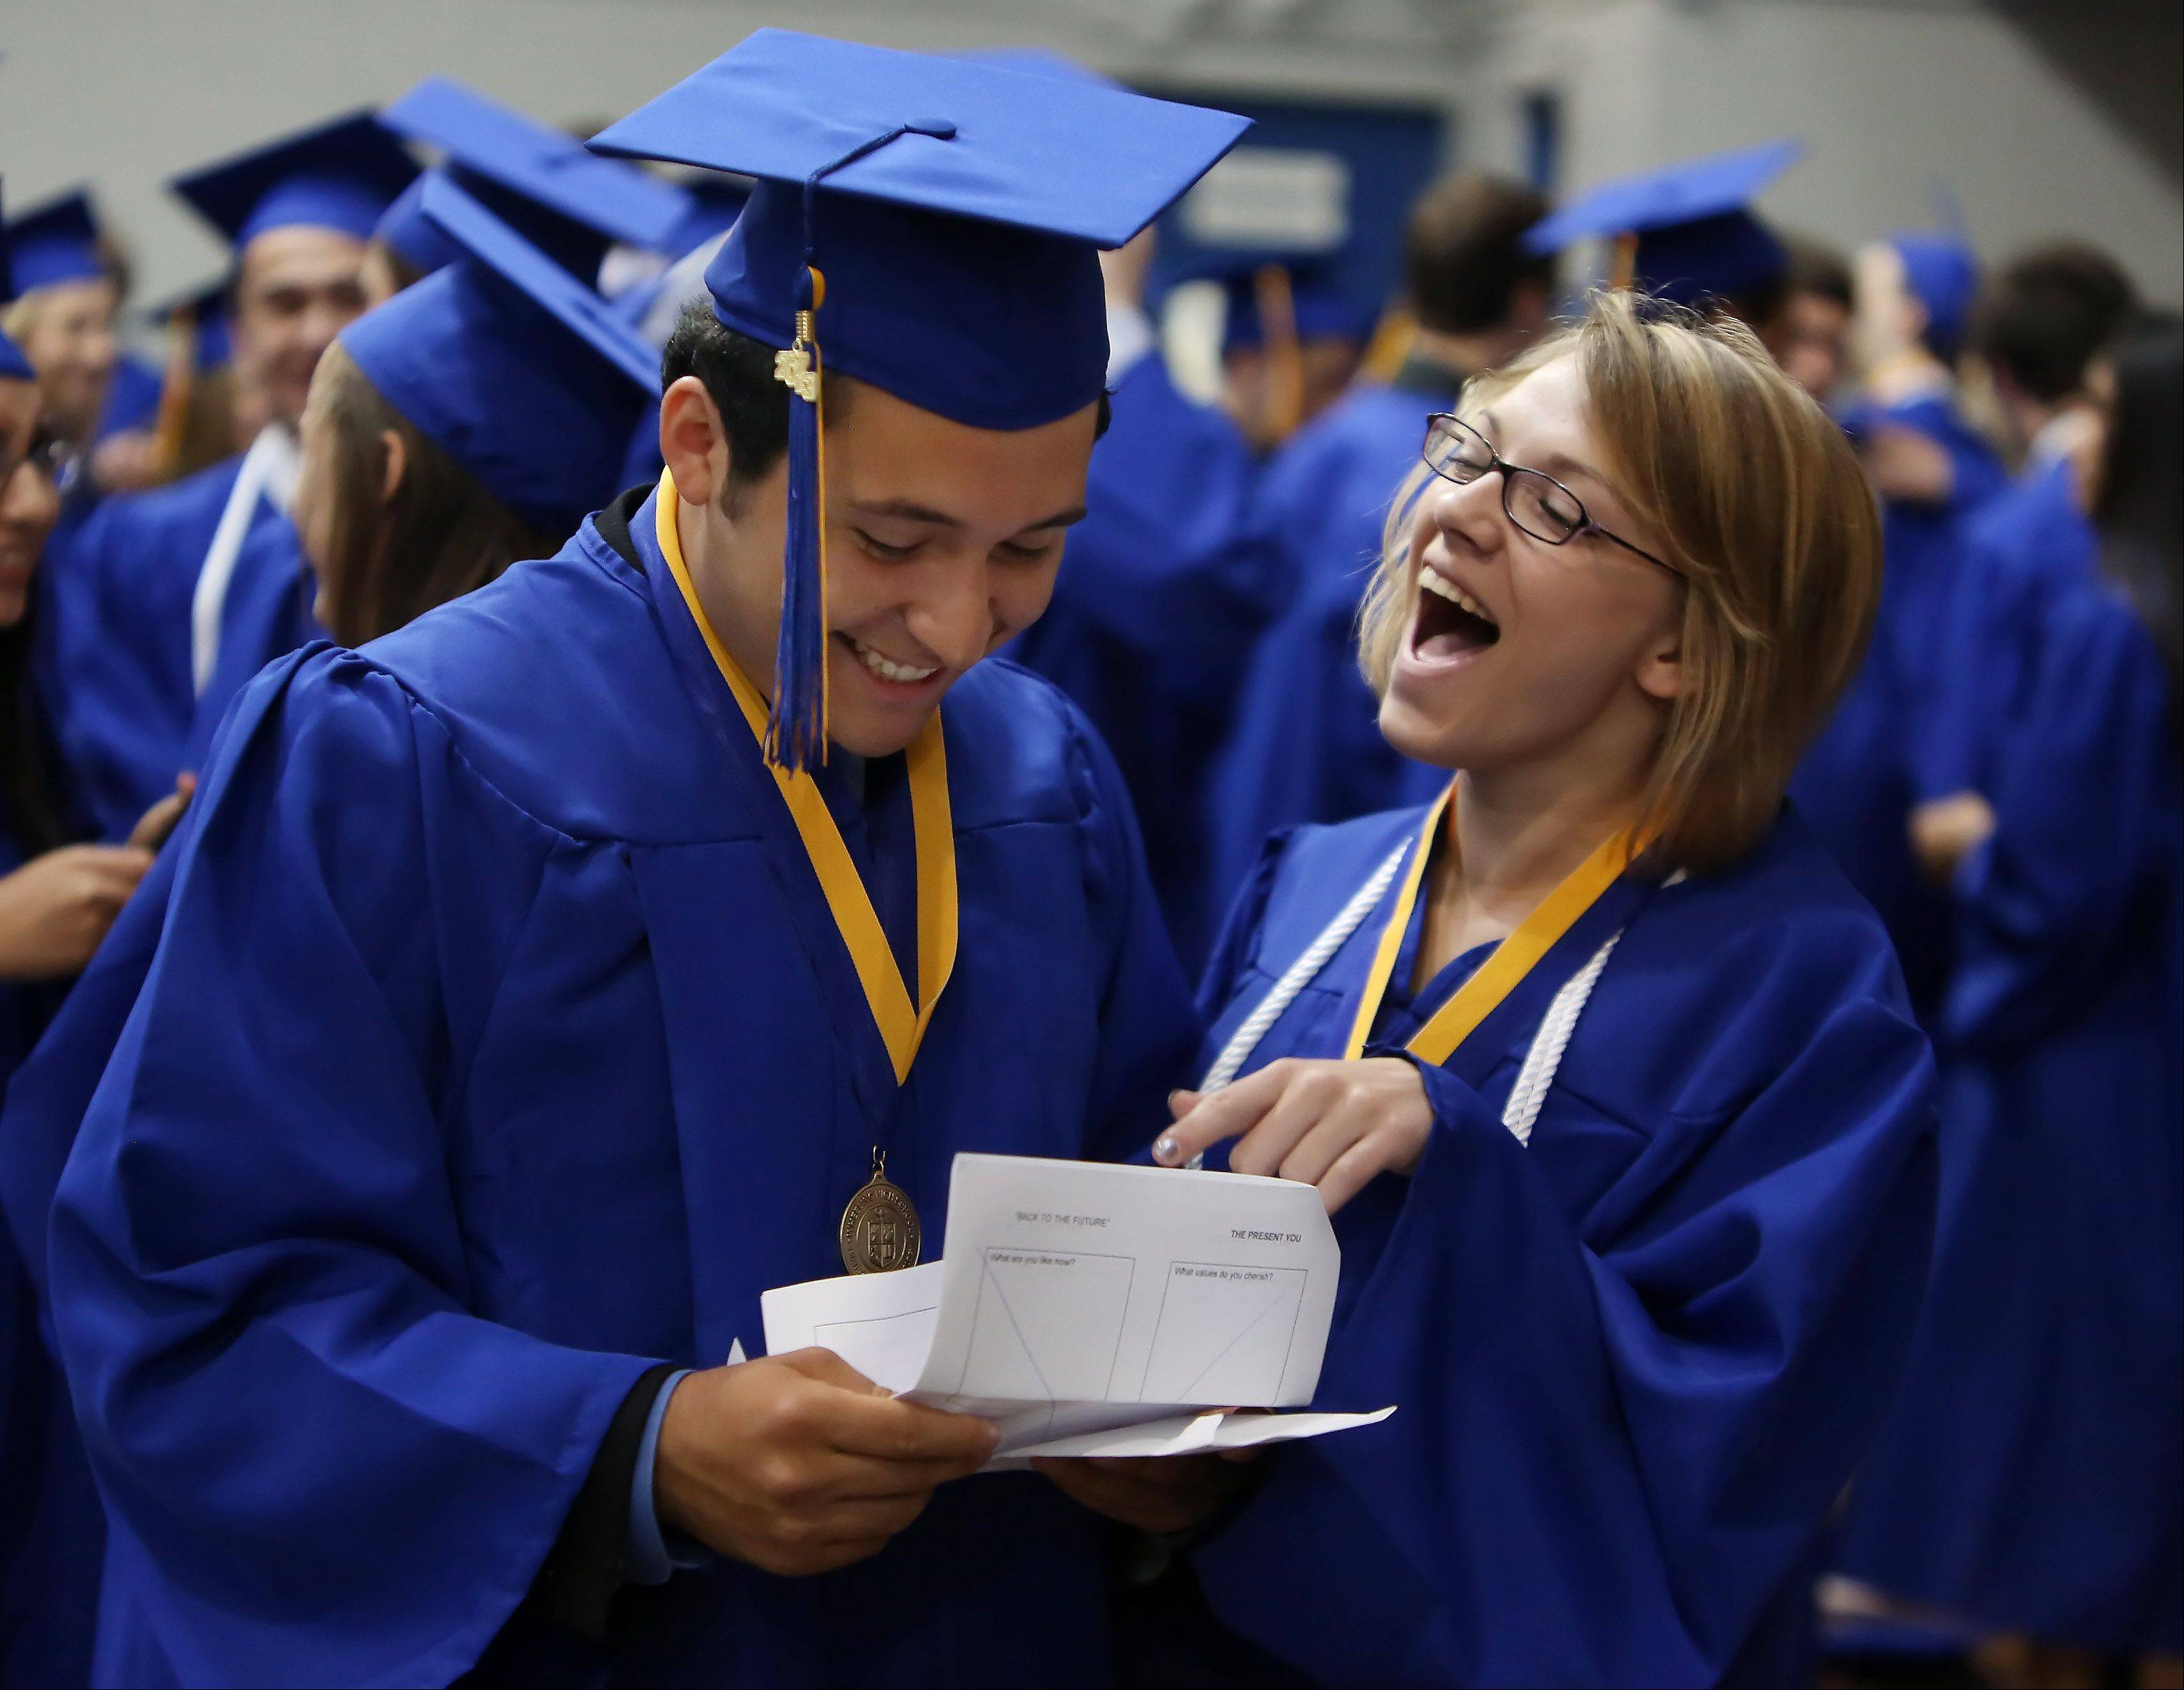 Senior Alfonso Figueroa reads a letter with Kaitlyn Nielsen that he wrote as a freshman stating his goals and reflecting on his future before the Wheeling High School graduation on Sunday, June 2nd, at the school. There were 425 graduating seniors who participated in commencement exercises